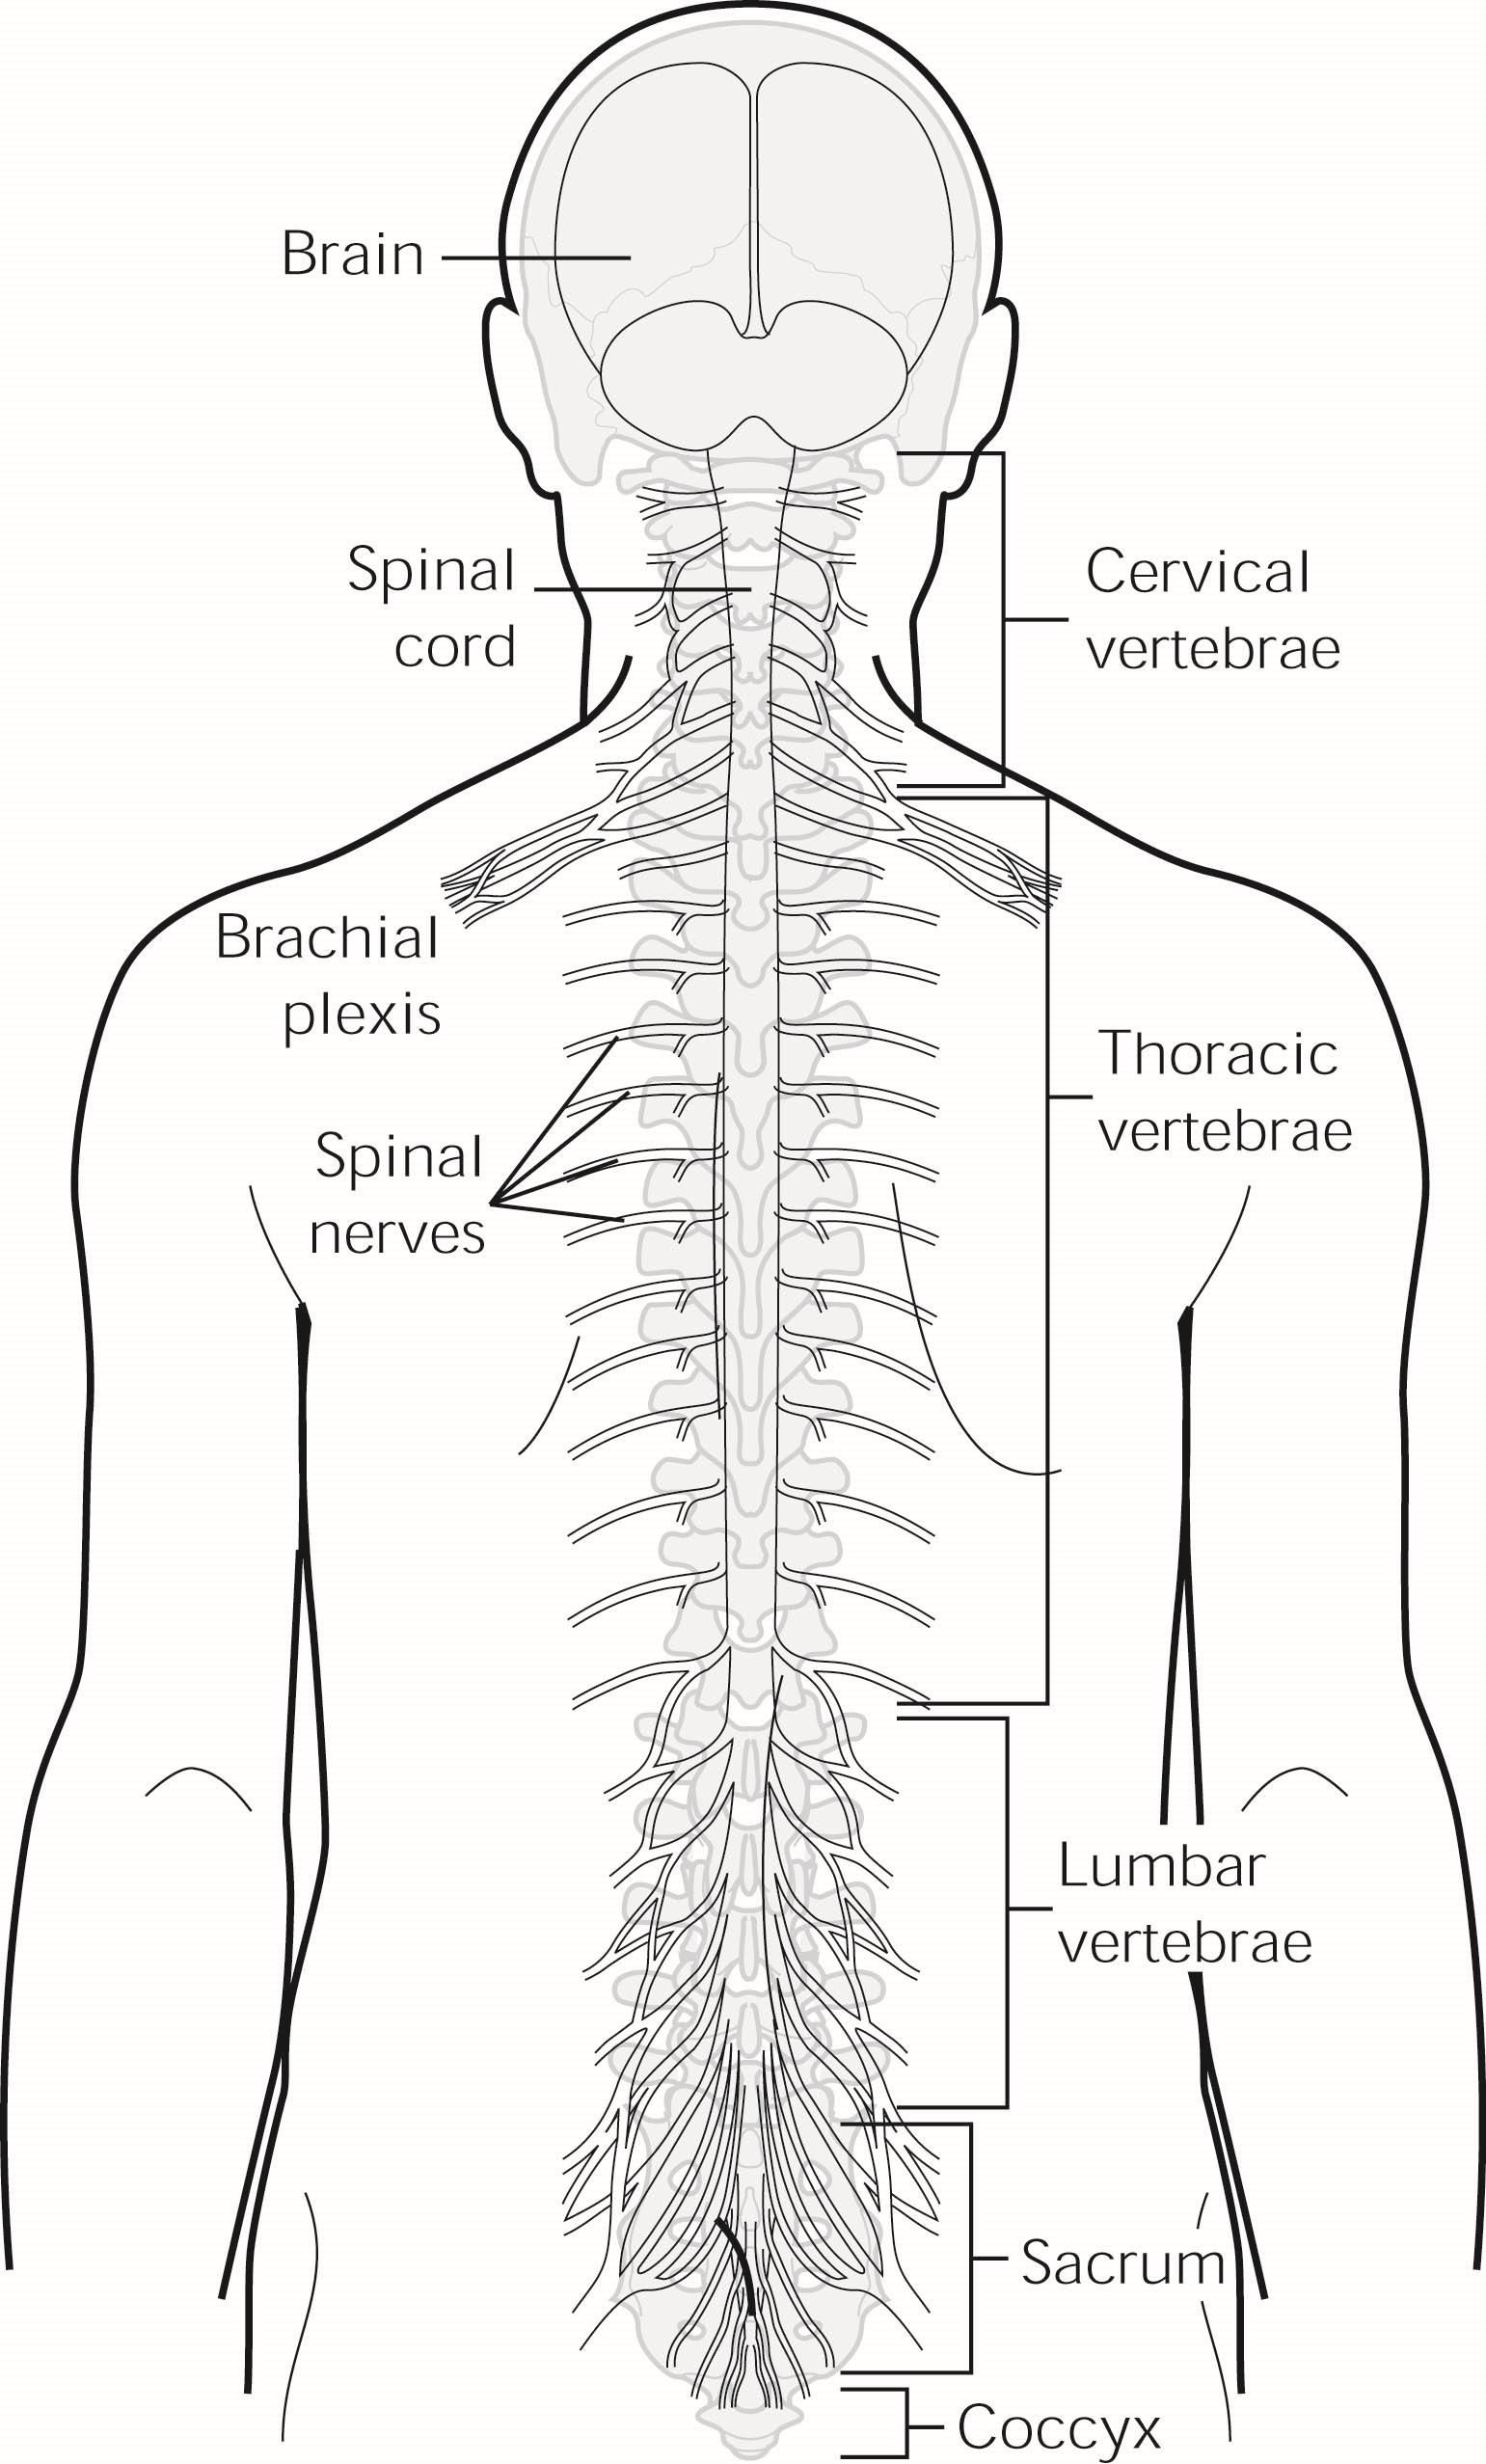 The spine consists of 24 vertebrae. Cervical spondylosis affects one or more of the top seven vertebrae of the spine.